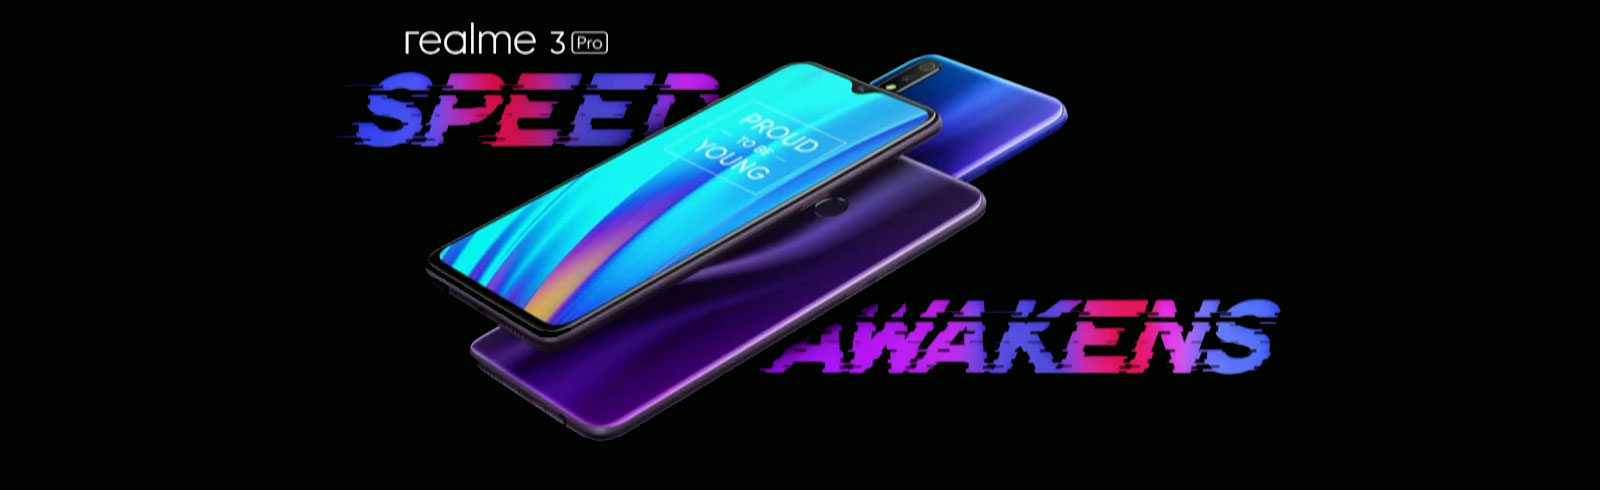 Realme 3 Pro is announced, features a Snapdragon 710 chipset and a 4045 mAh battery